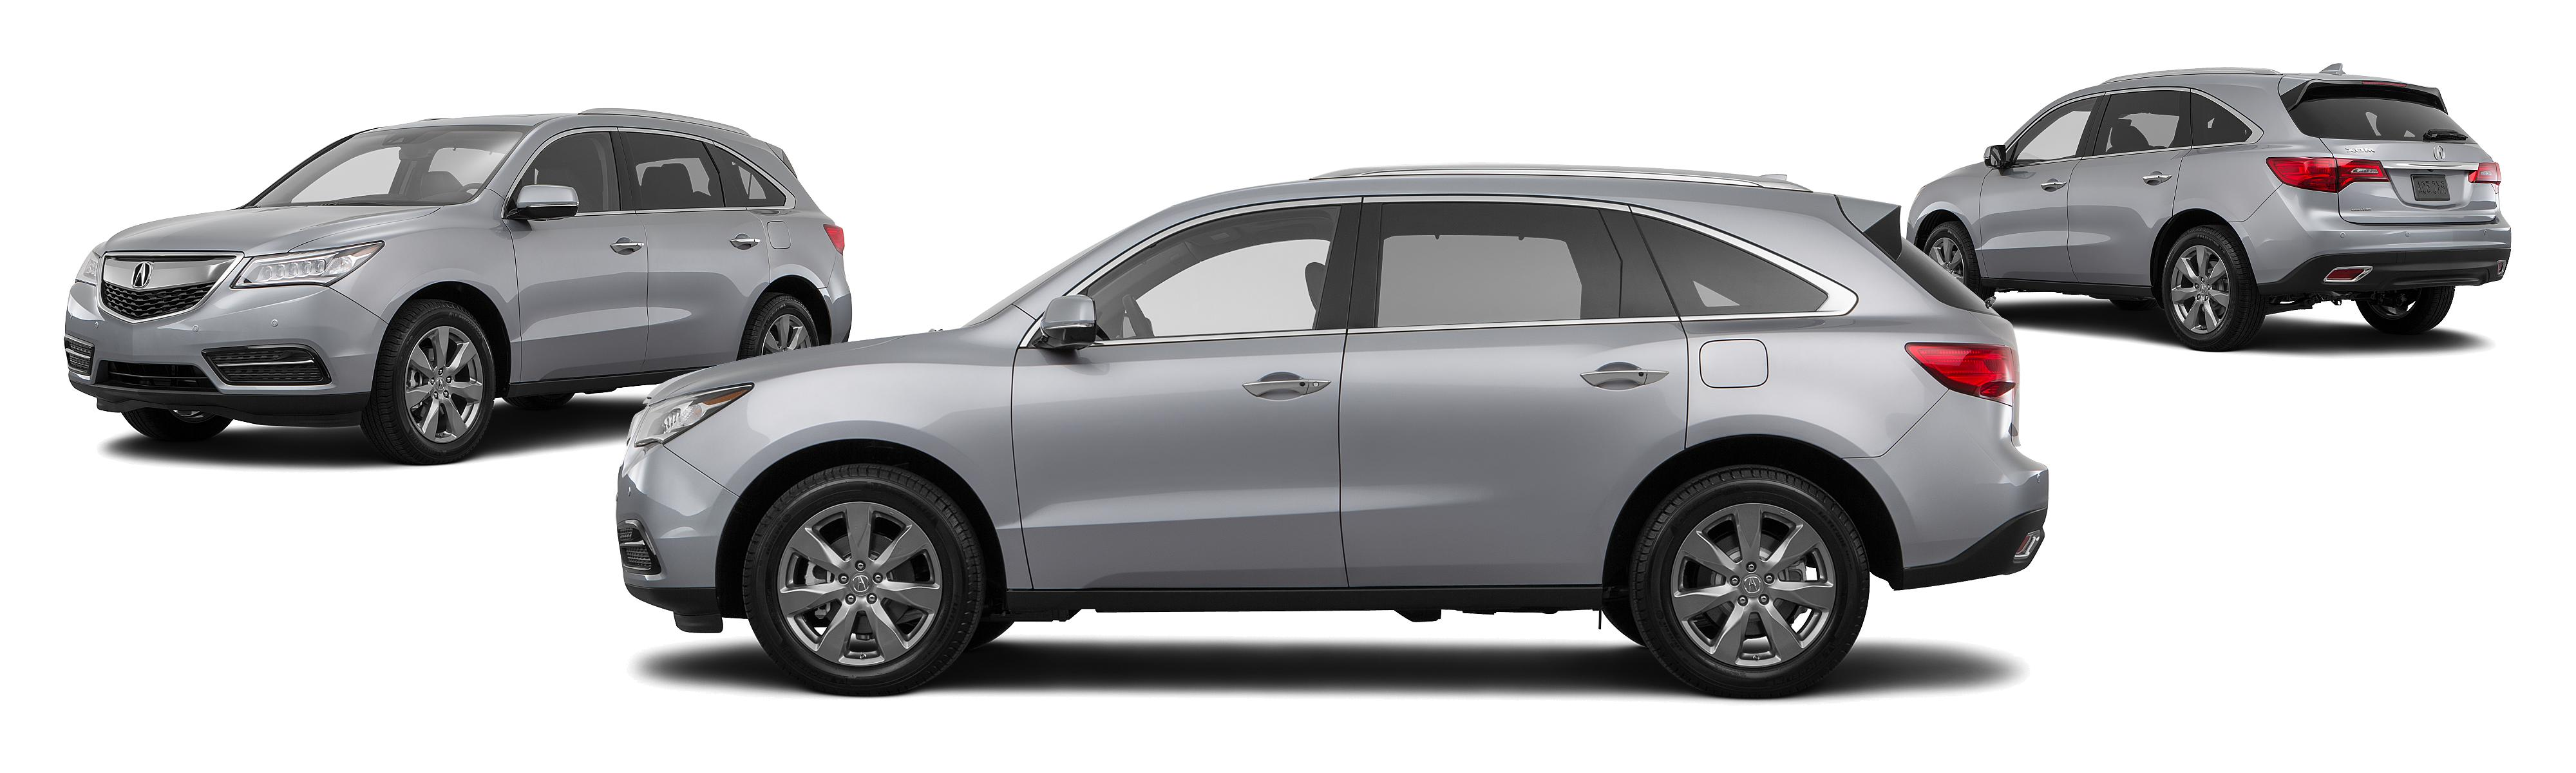 acura pages models mdx suv cartype